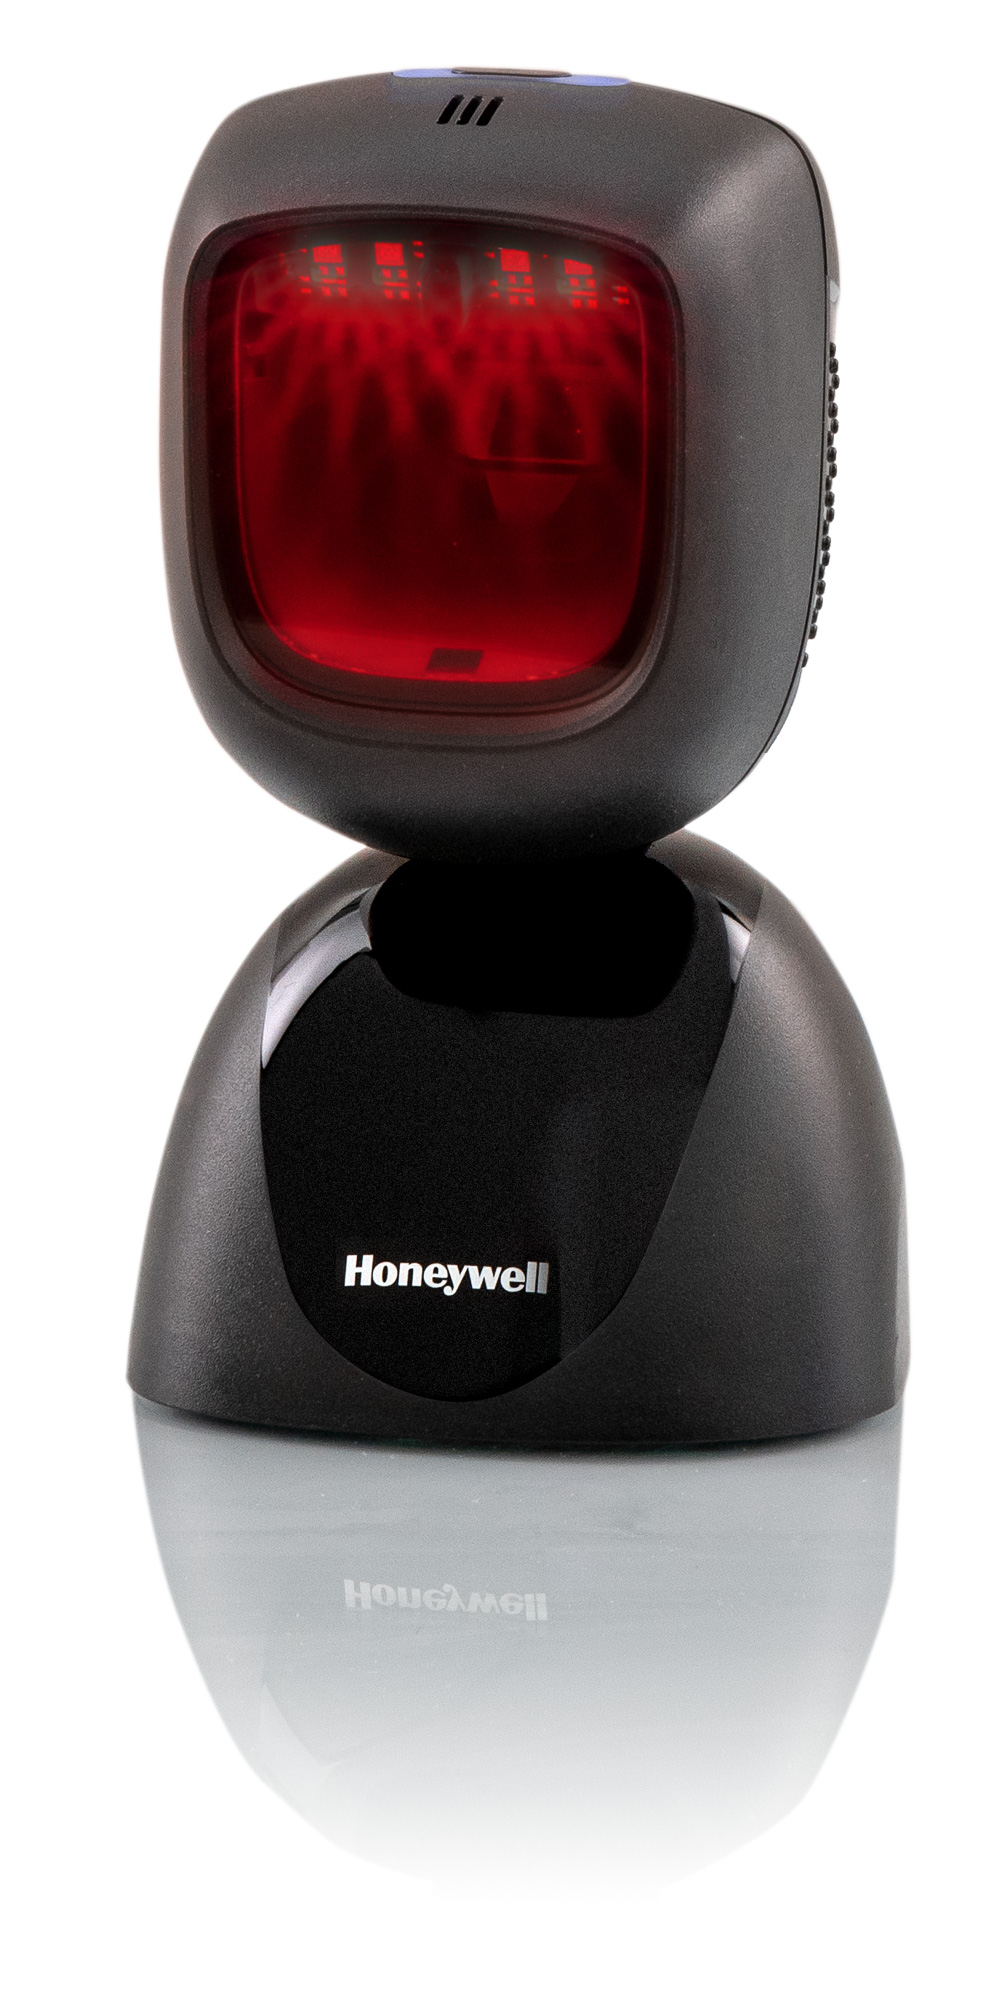 Honeywell-HF600-Standgerät-links.jpg